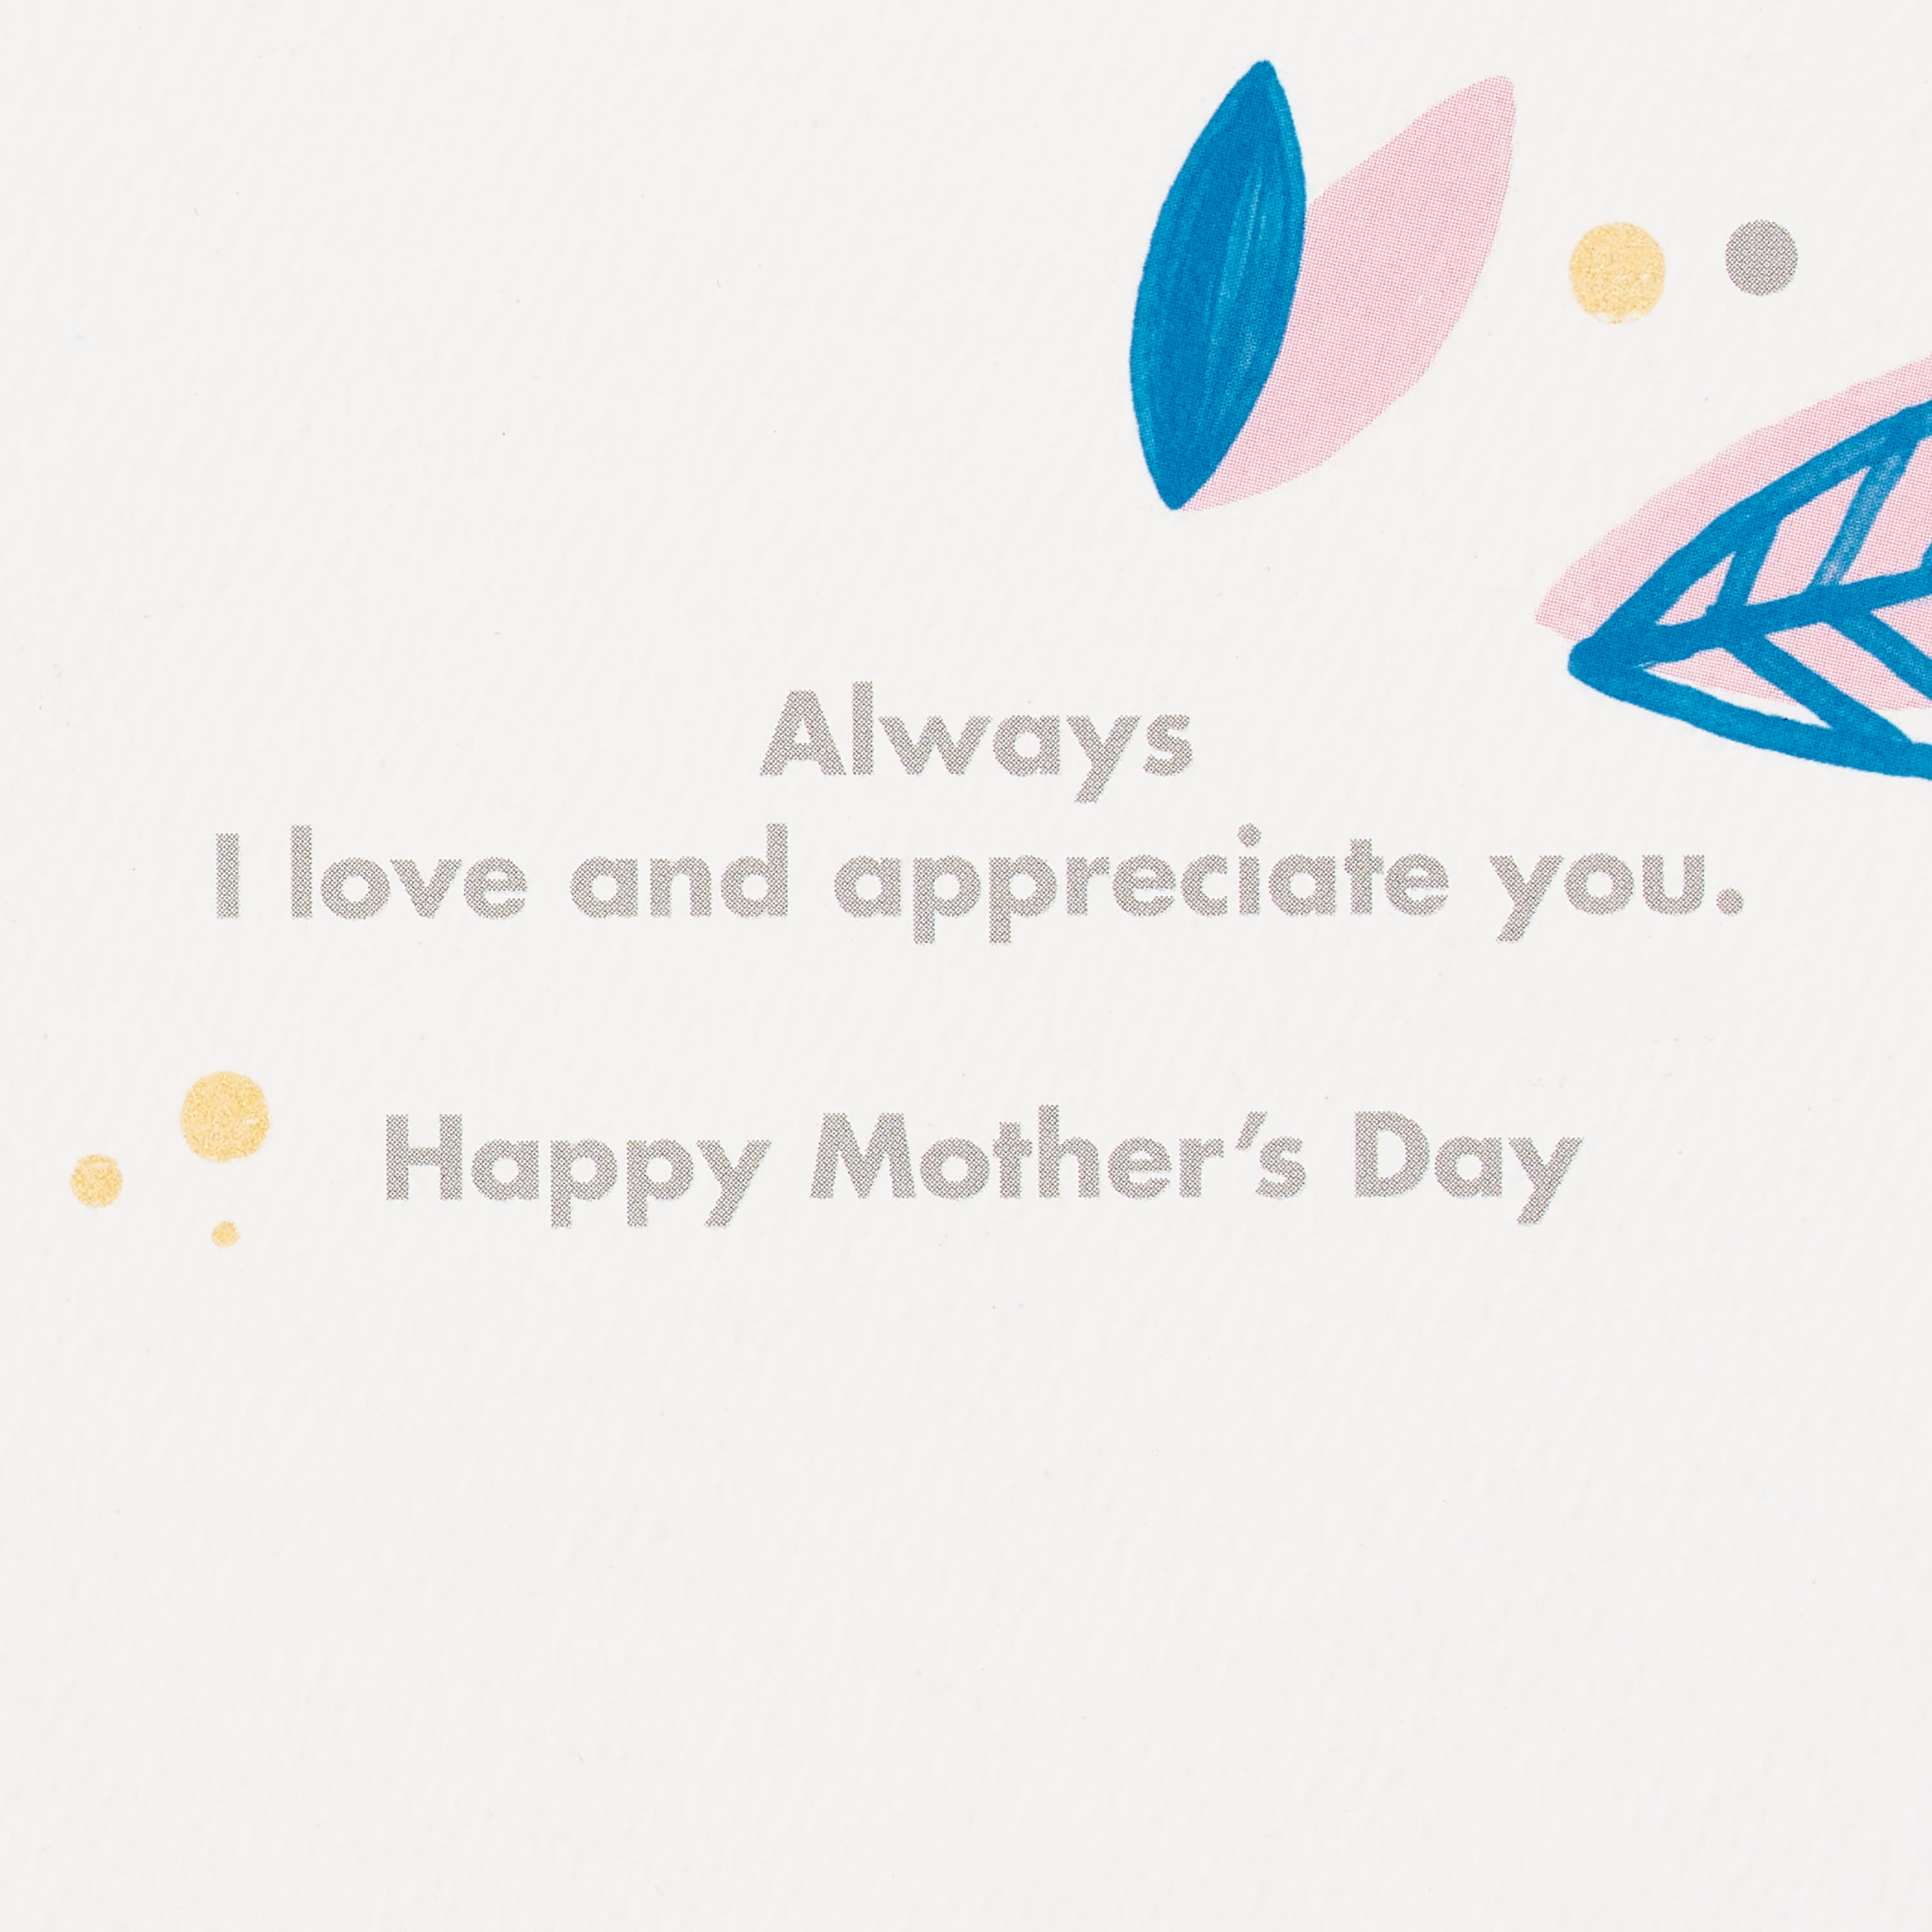 Best Friend Mother's Day Card image